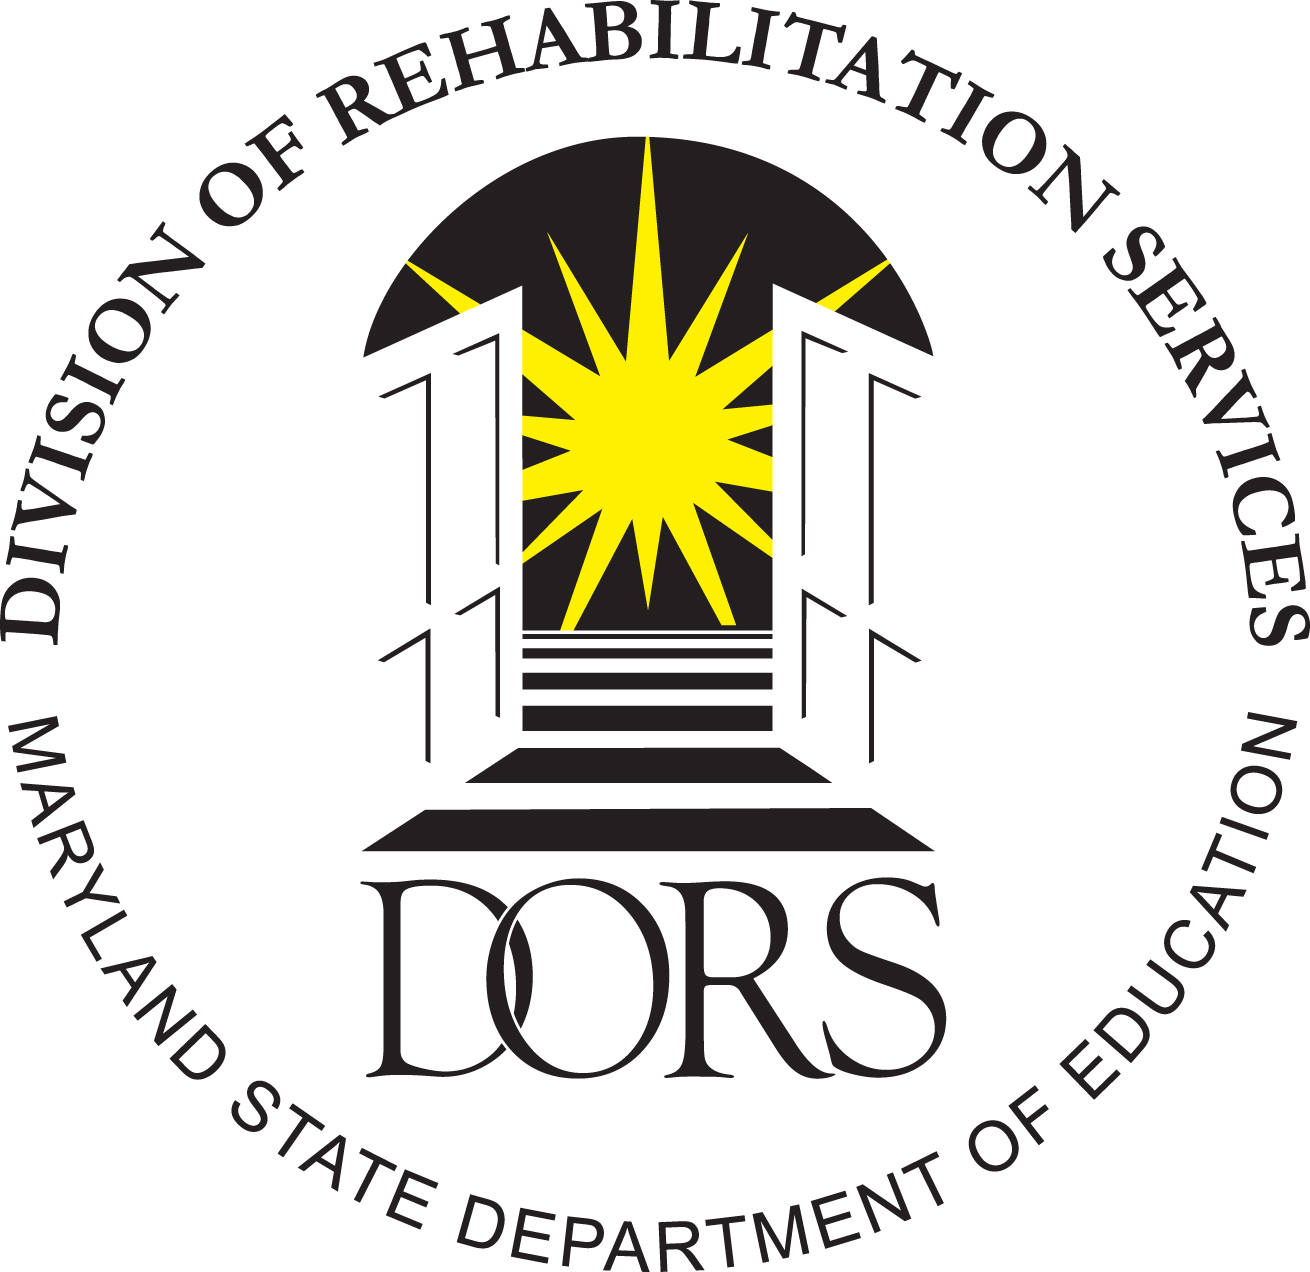 Maryland Division of Rehabilitation Services